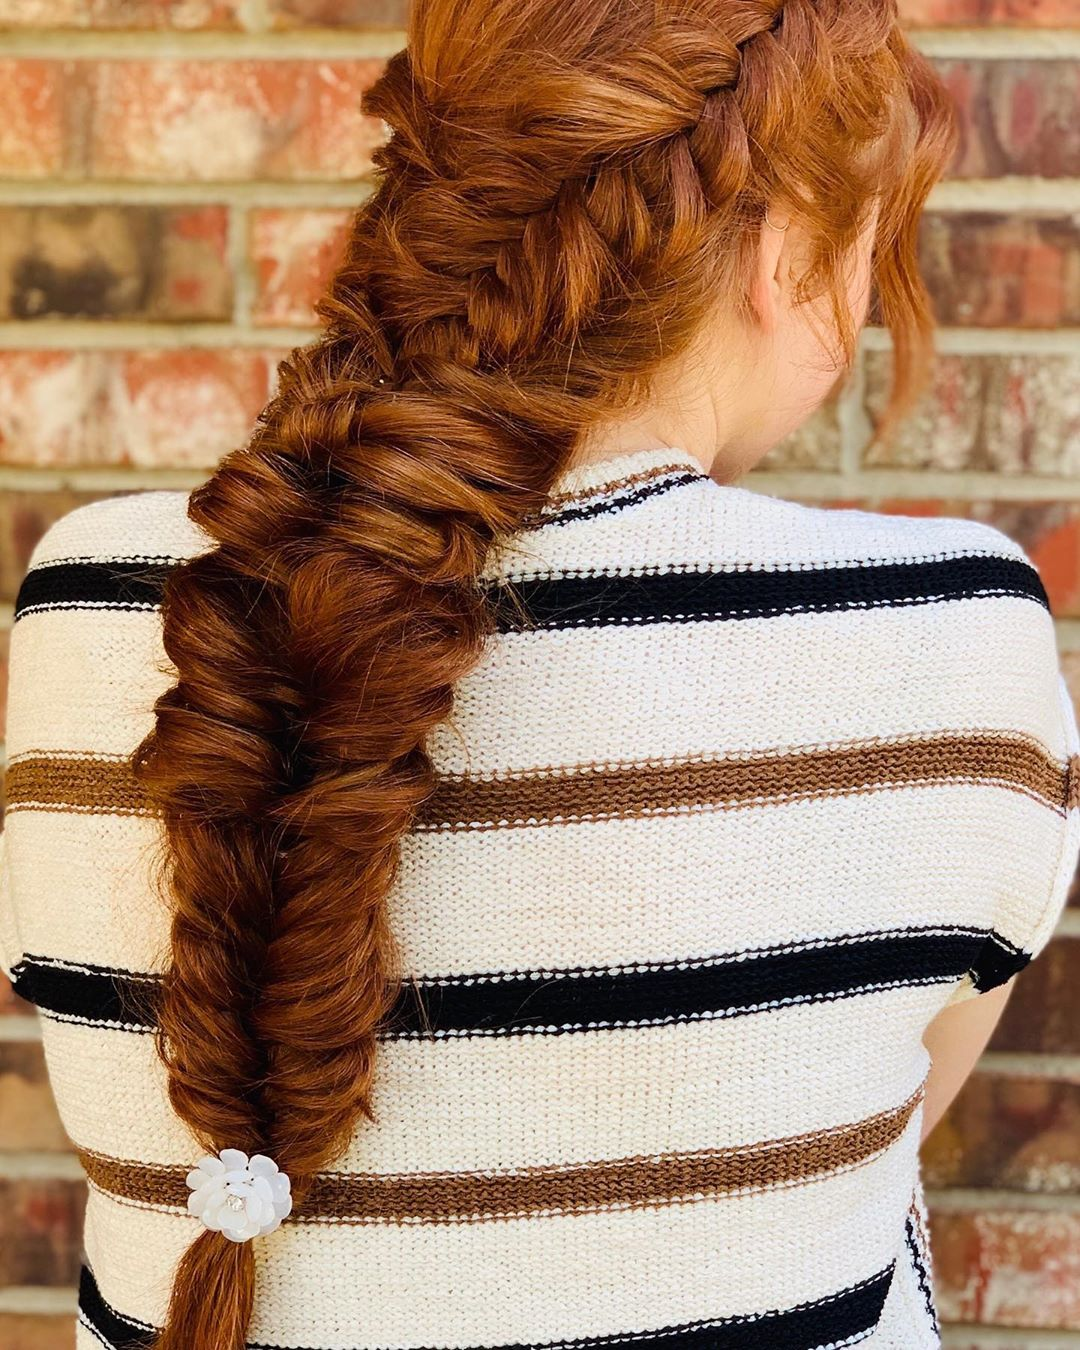 Fishtail boho braids pulled together in long red hair